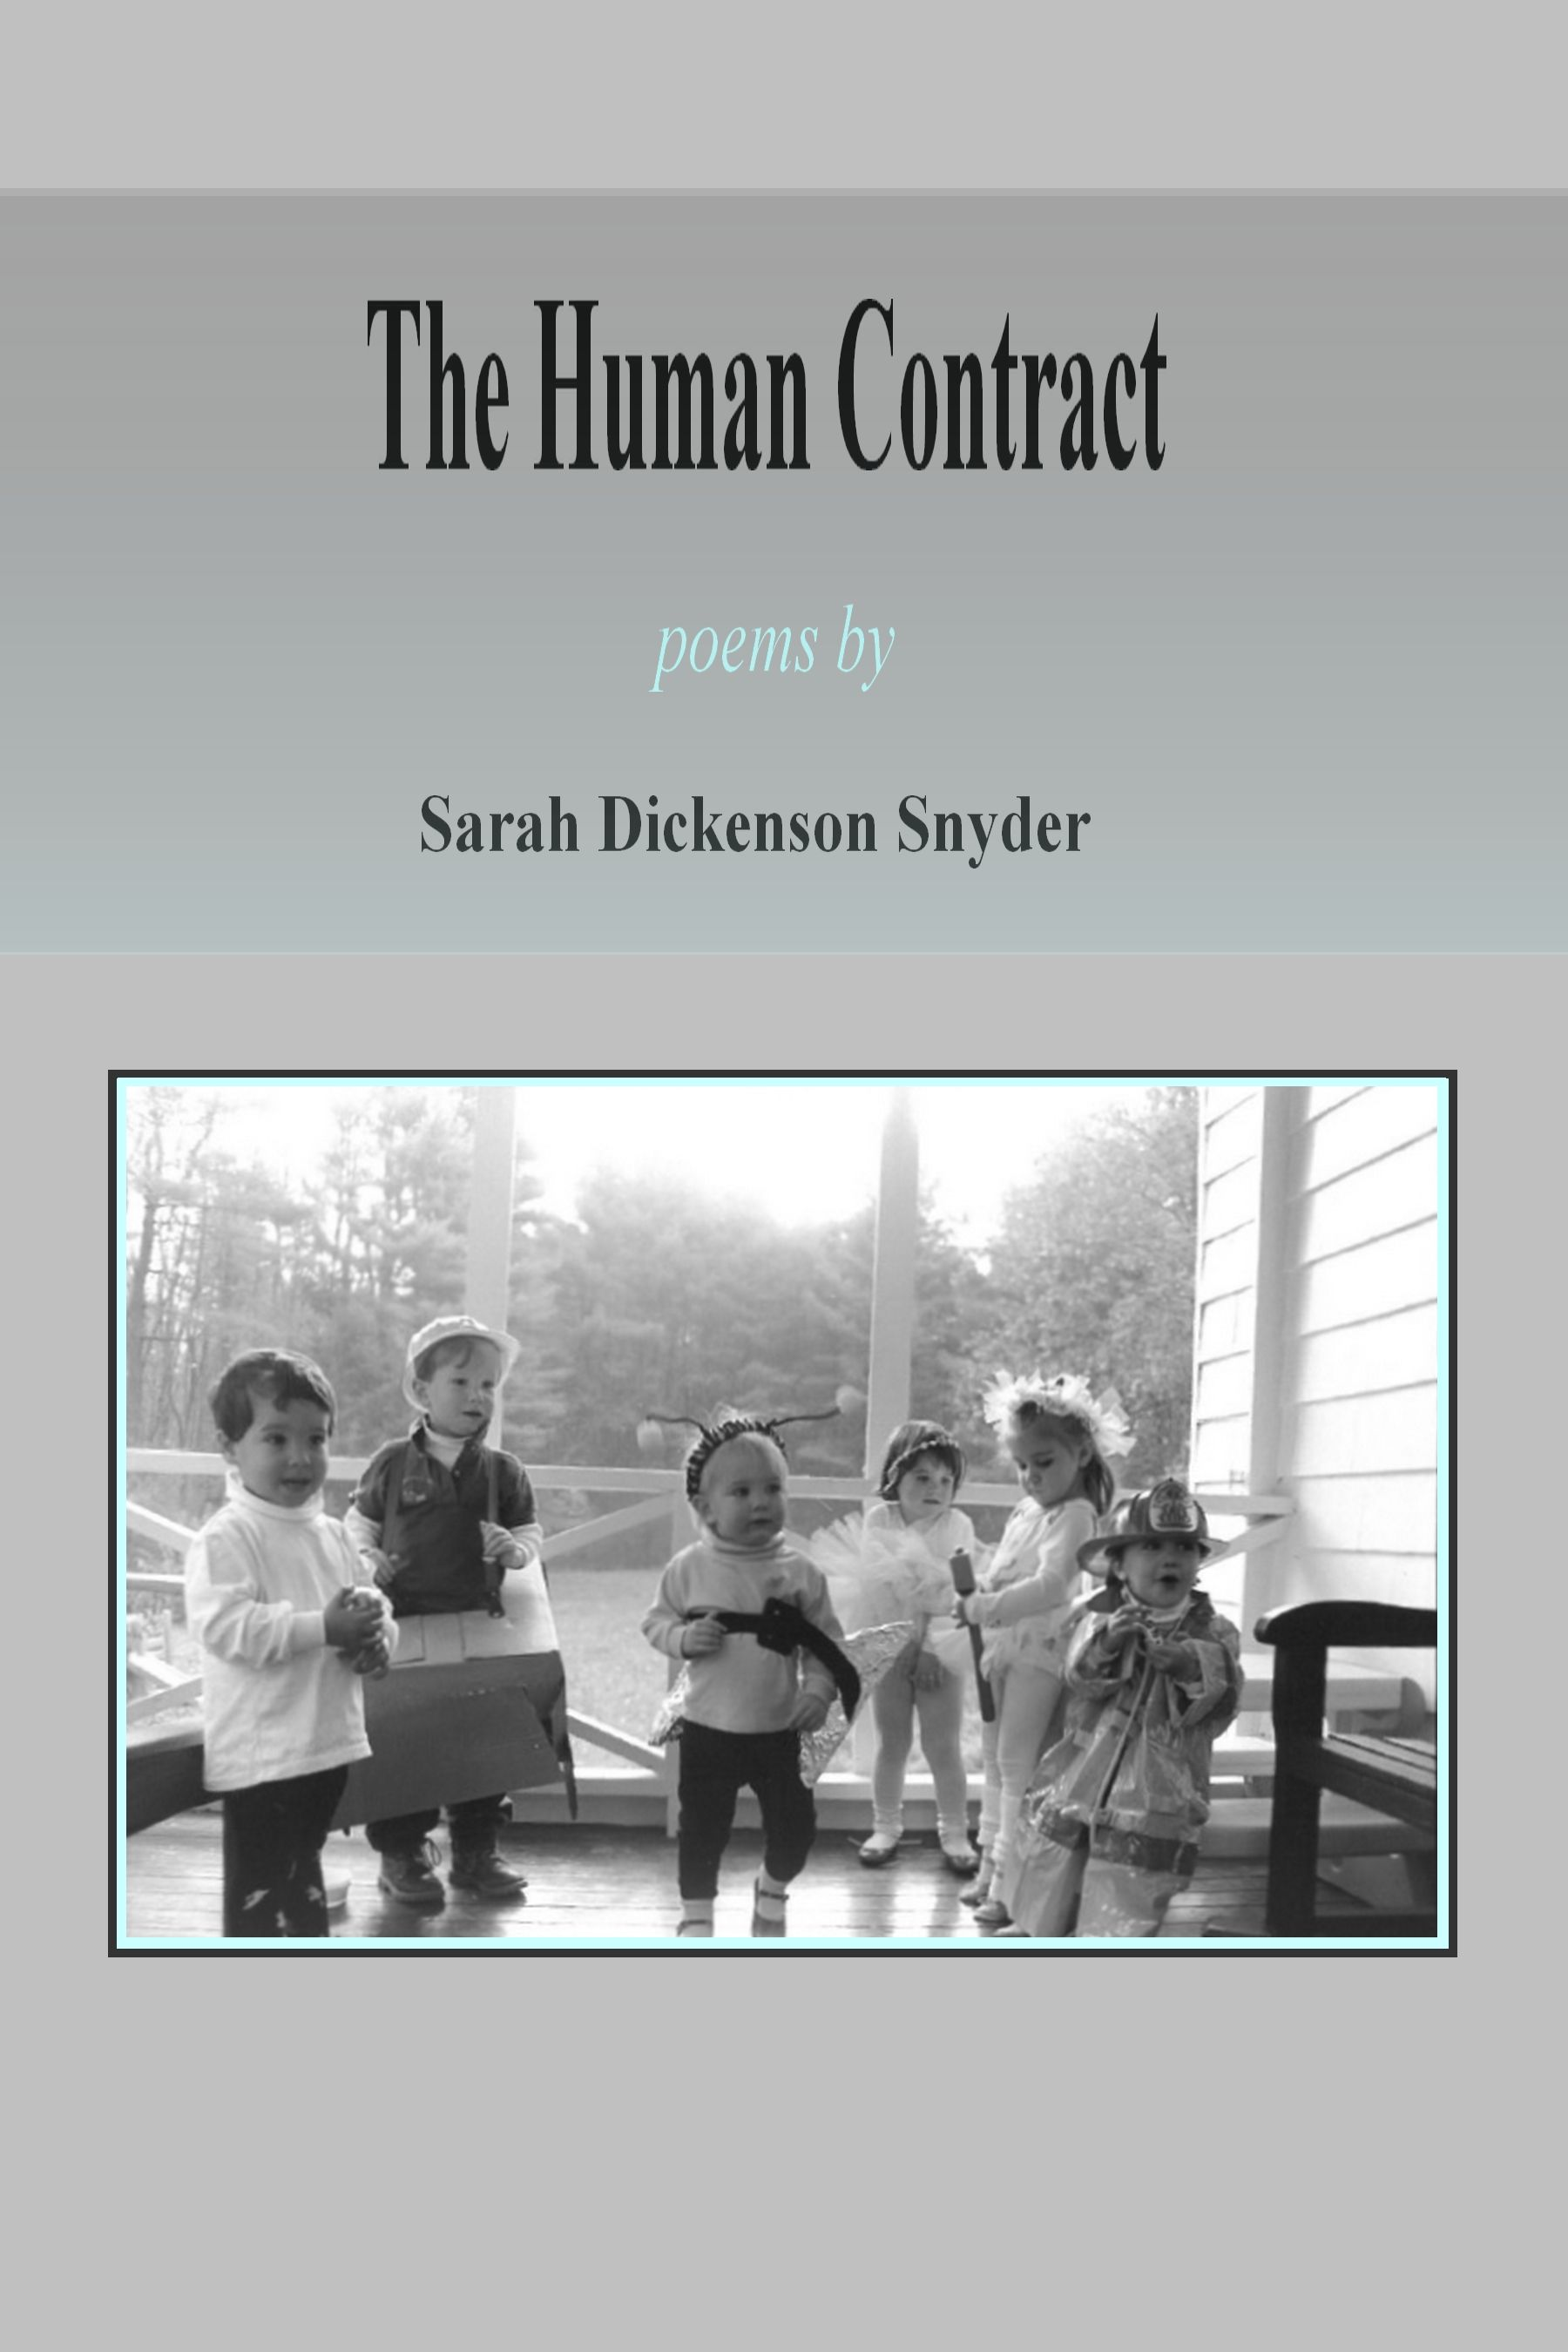 A Book Review of The Human Contract by Sarah Dickenson